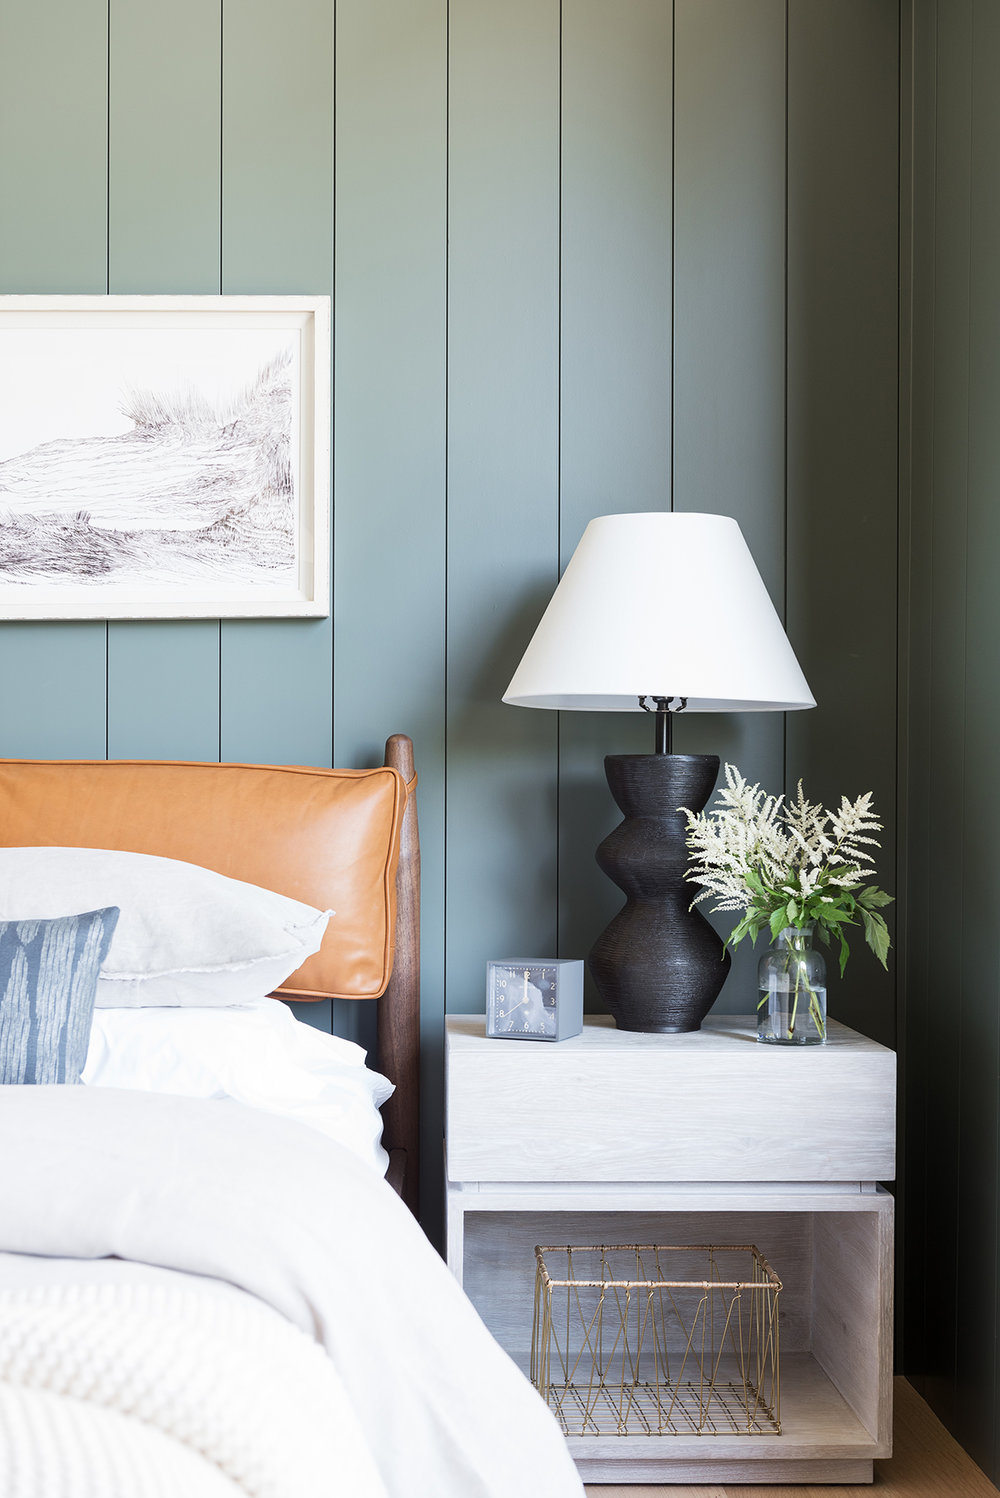 IMAGE: via Studio McGee feat. paint color 'Nitty Gritty' from Portola Paints